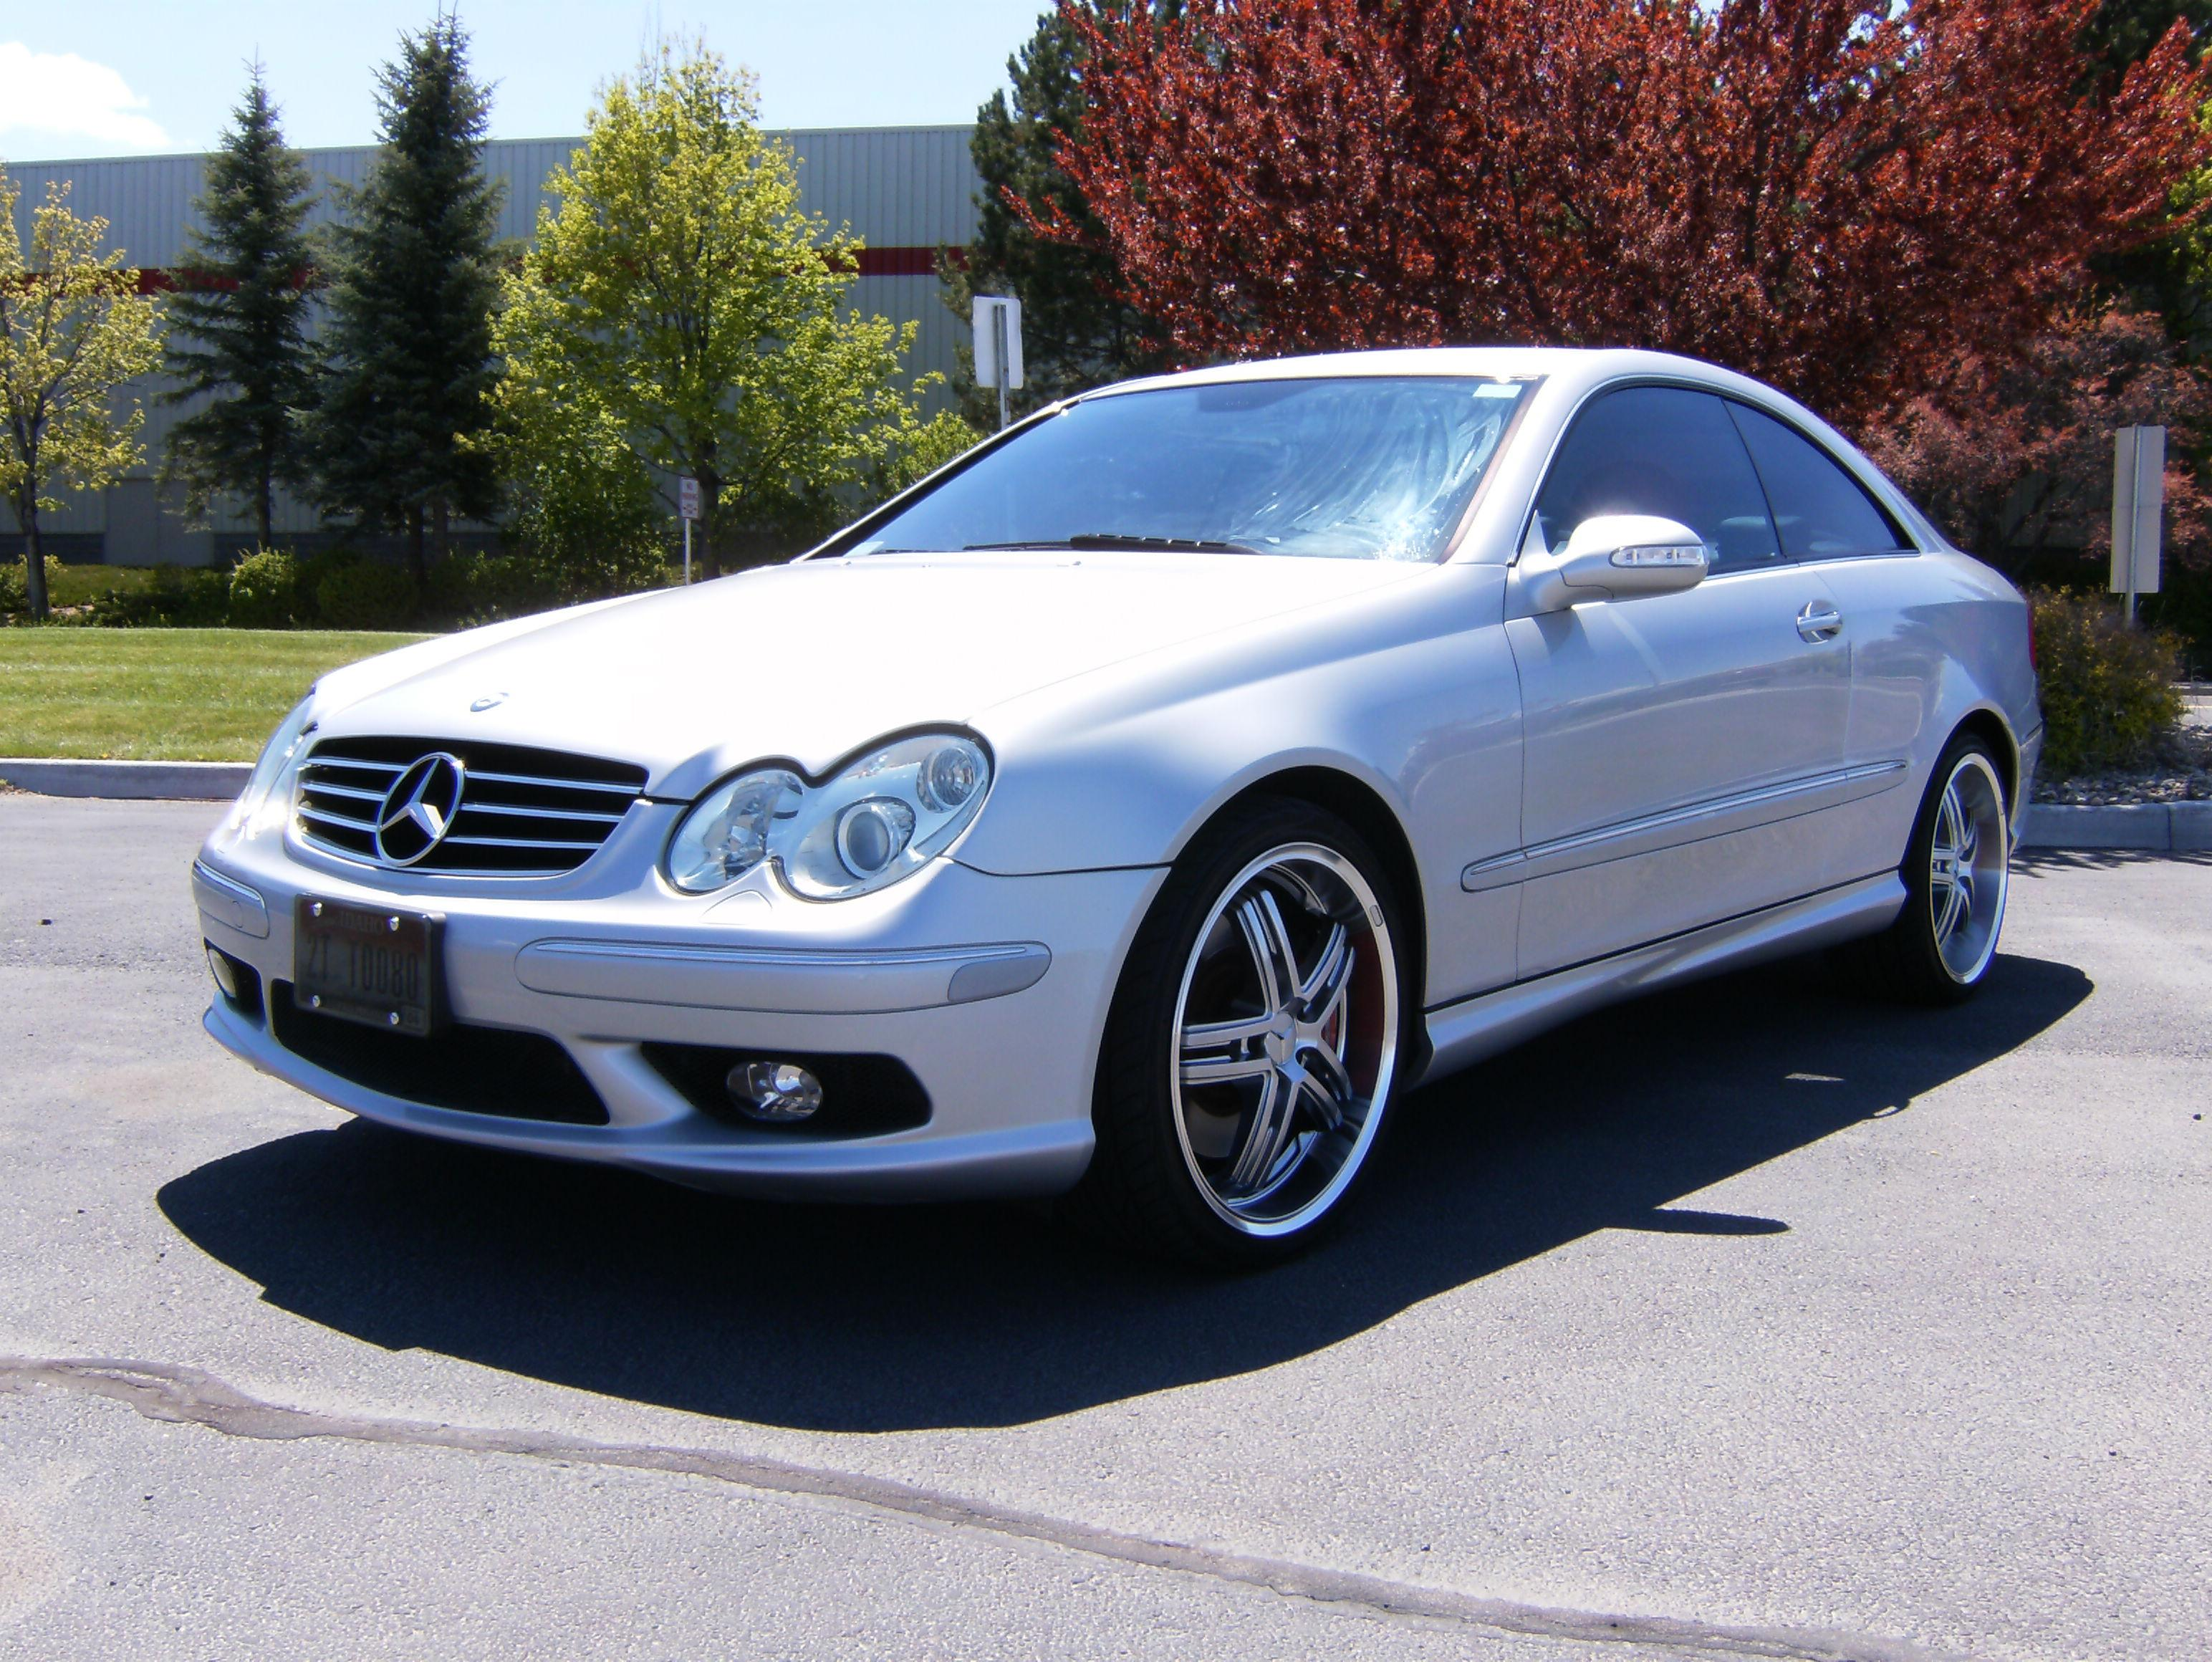 akararic 2004 mercedes benz clk classclk500 coupe 2d specs photos modification info at cardomain. Black Bedroom Furniture Sets. Home Design Ideas